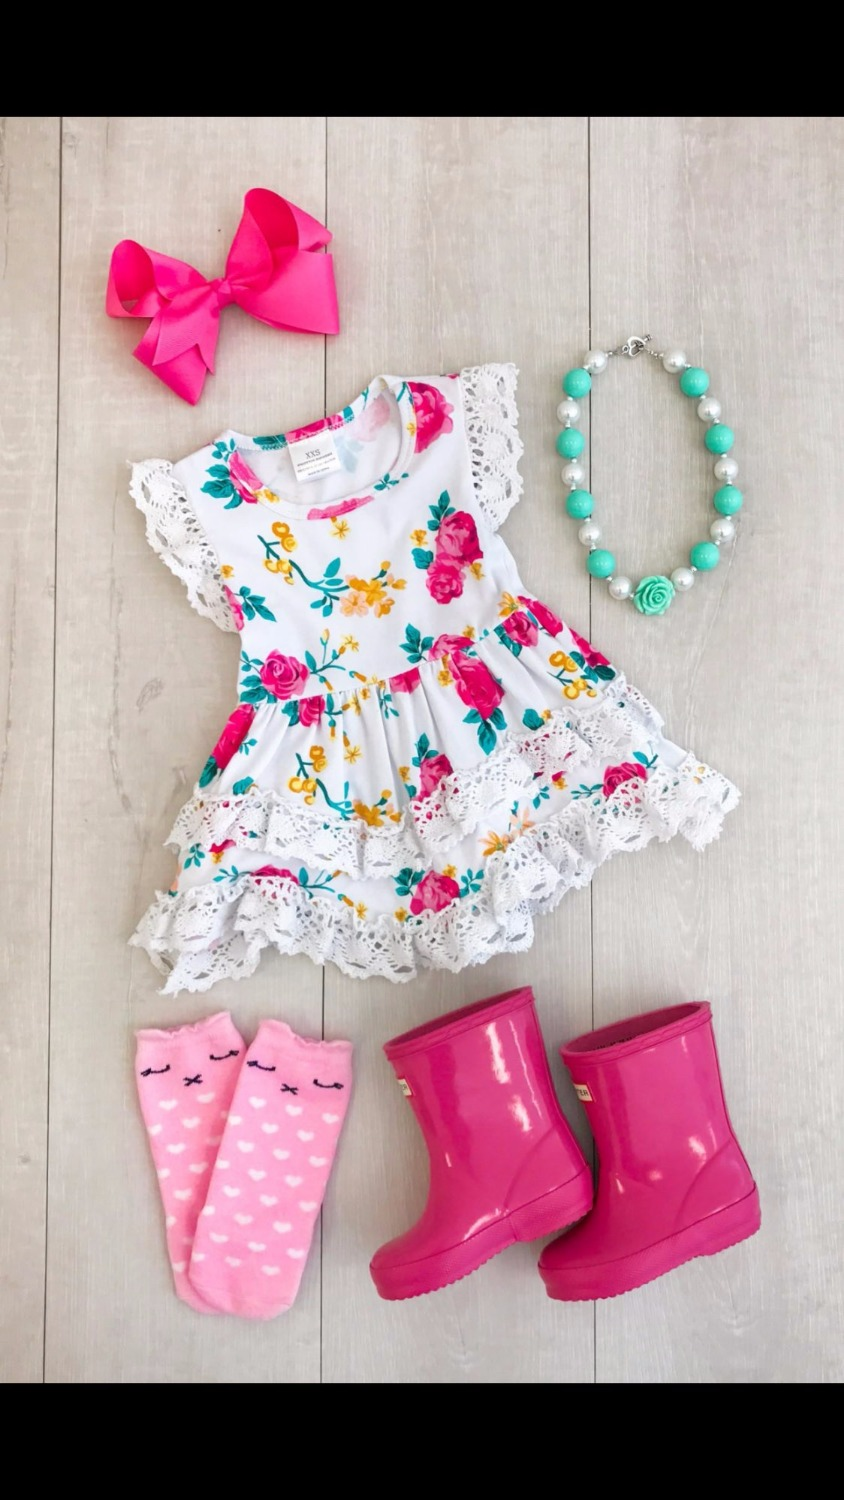 summer cotton design baby girls kids boutique clothes dress sets stiped floral ruffles with matching accessories necklace & bow 2016 summer baby child girls outfits ruffles shorts white striped watermelon boutique ruffles clothes kids matching headband set